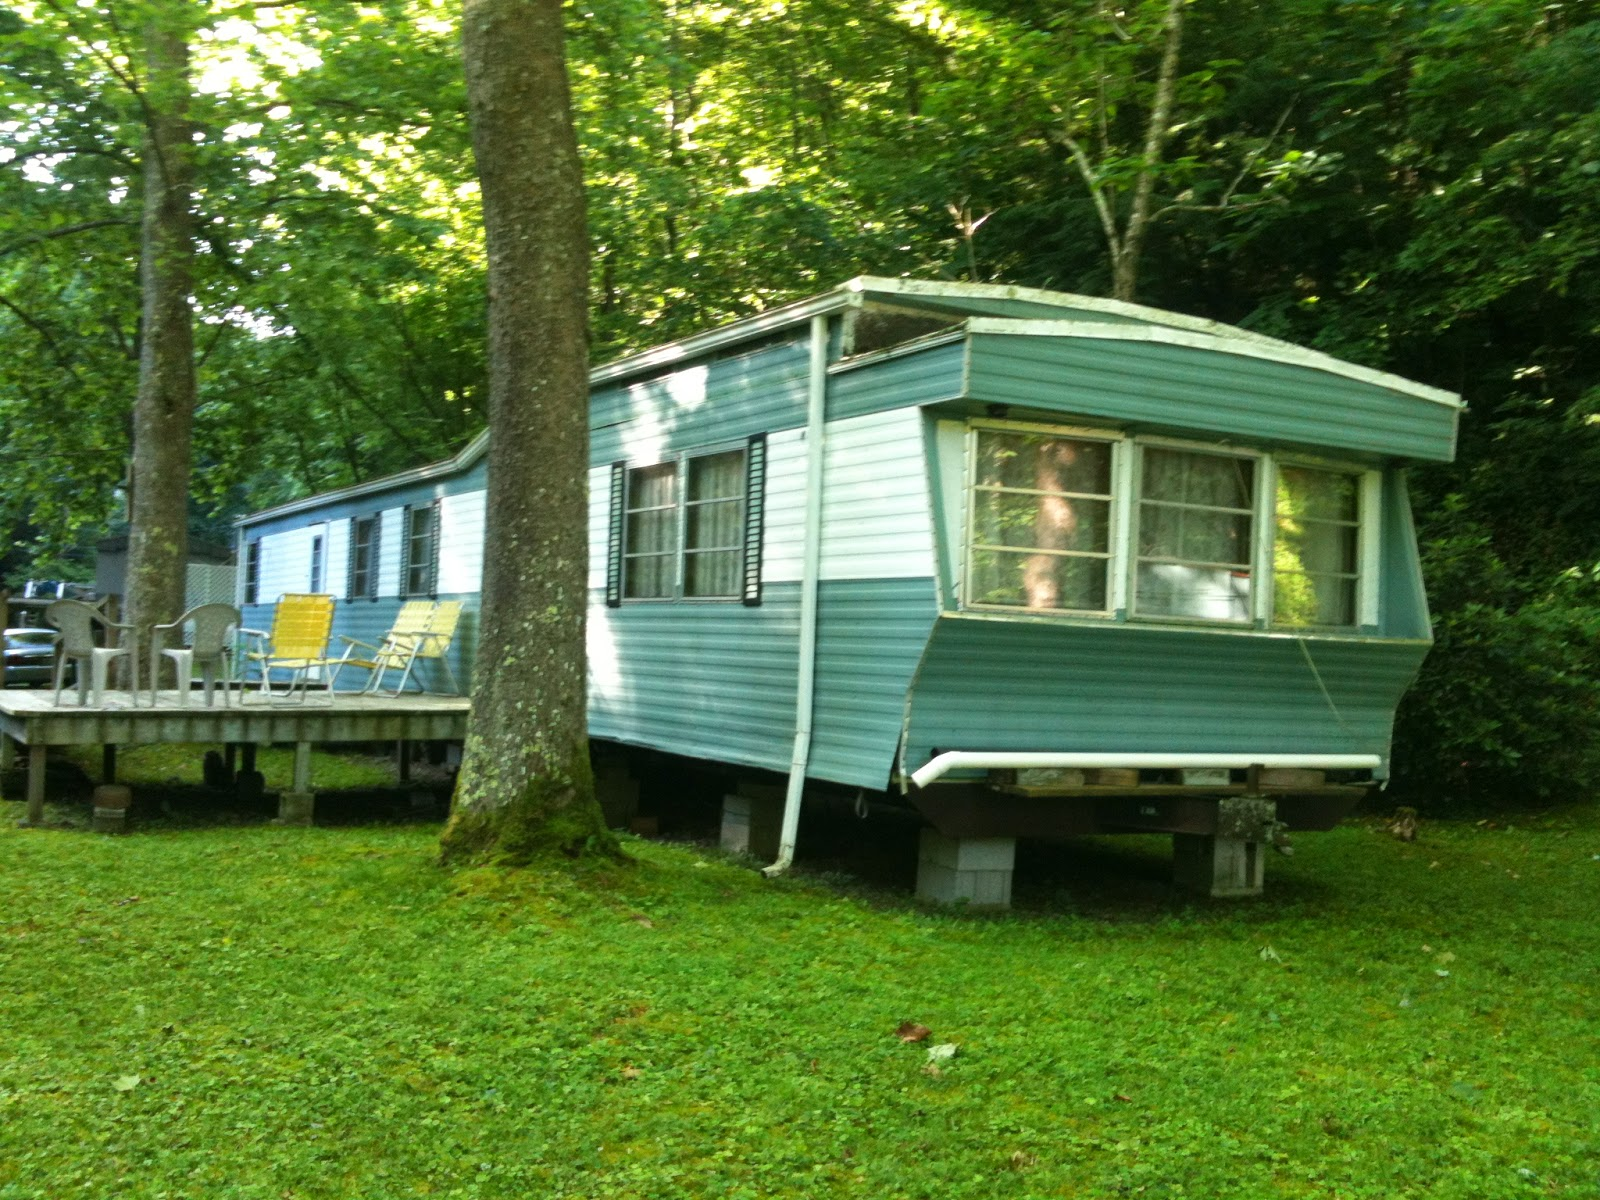 Old Mobile Home 18 Photo Gallery